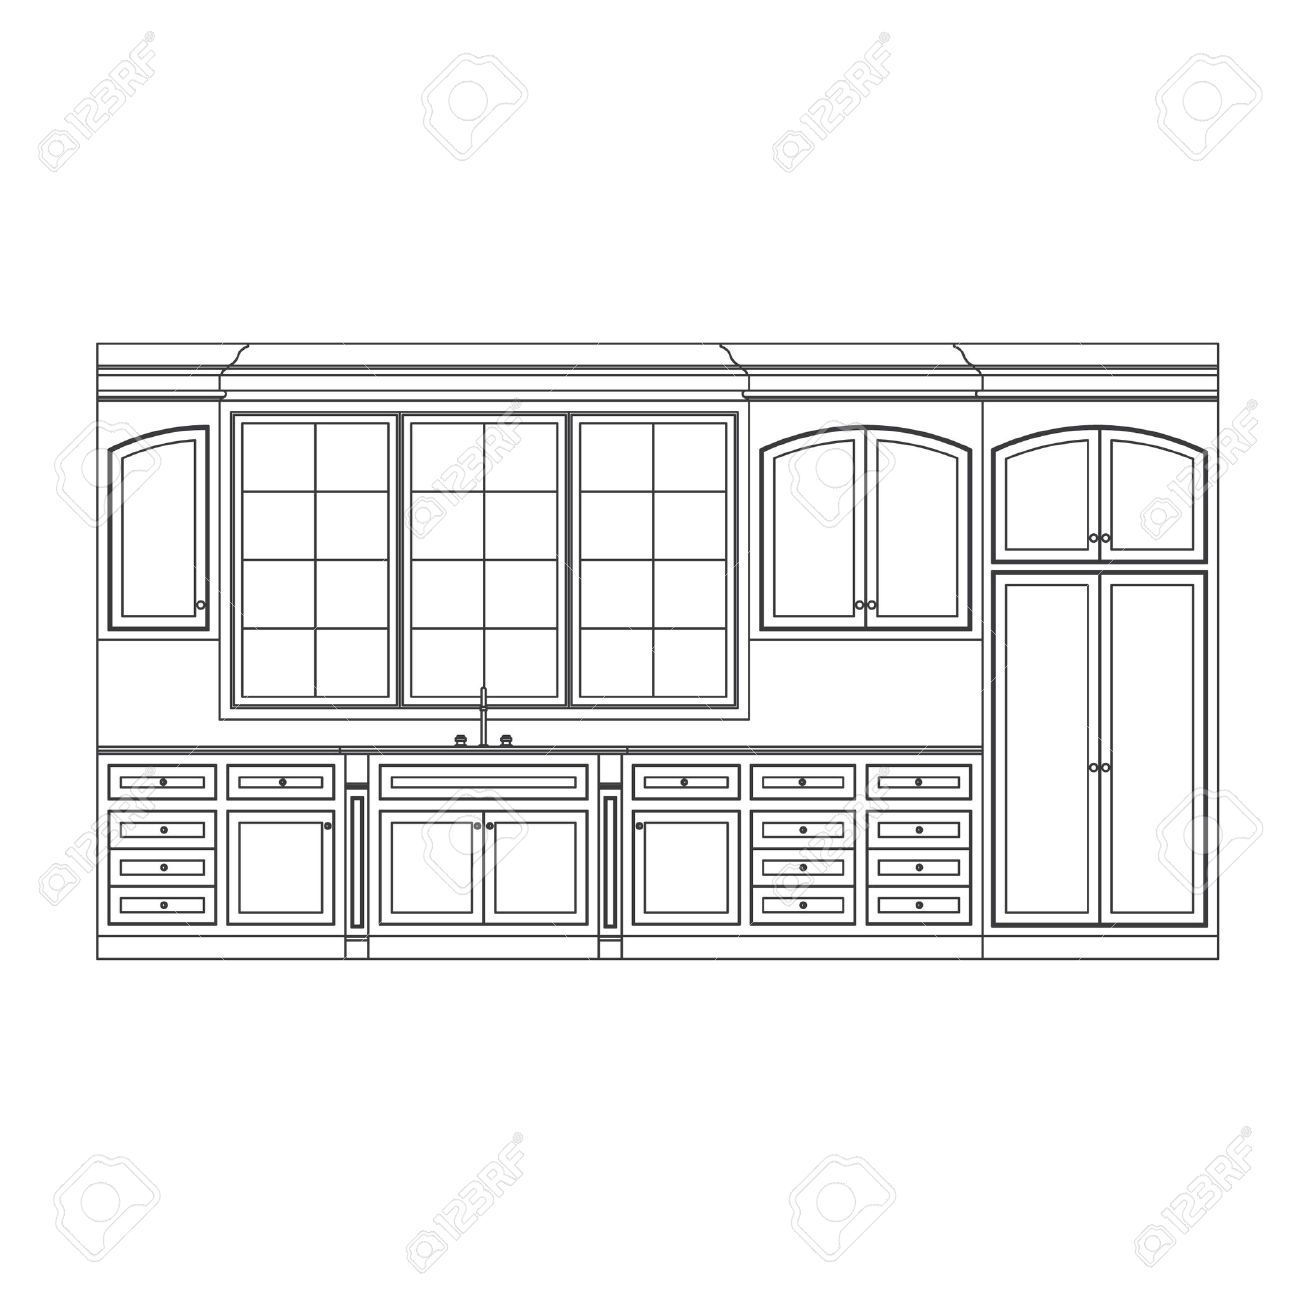 Kitchen Elevation Line Drawing, Cabinets, Drawers, Appliances ...